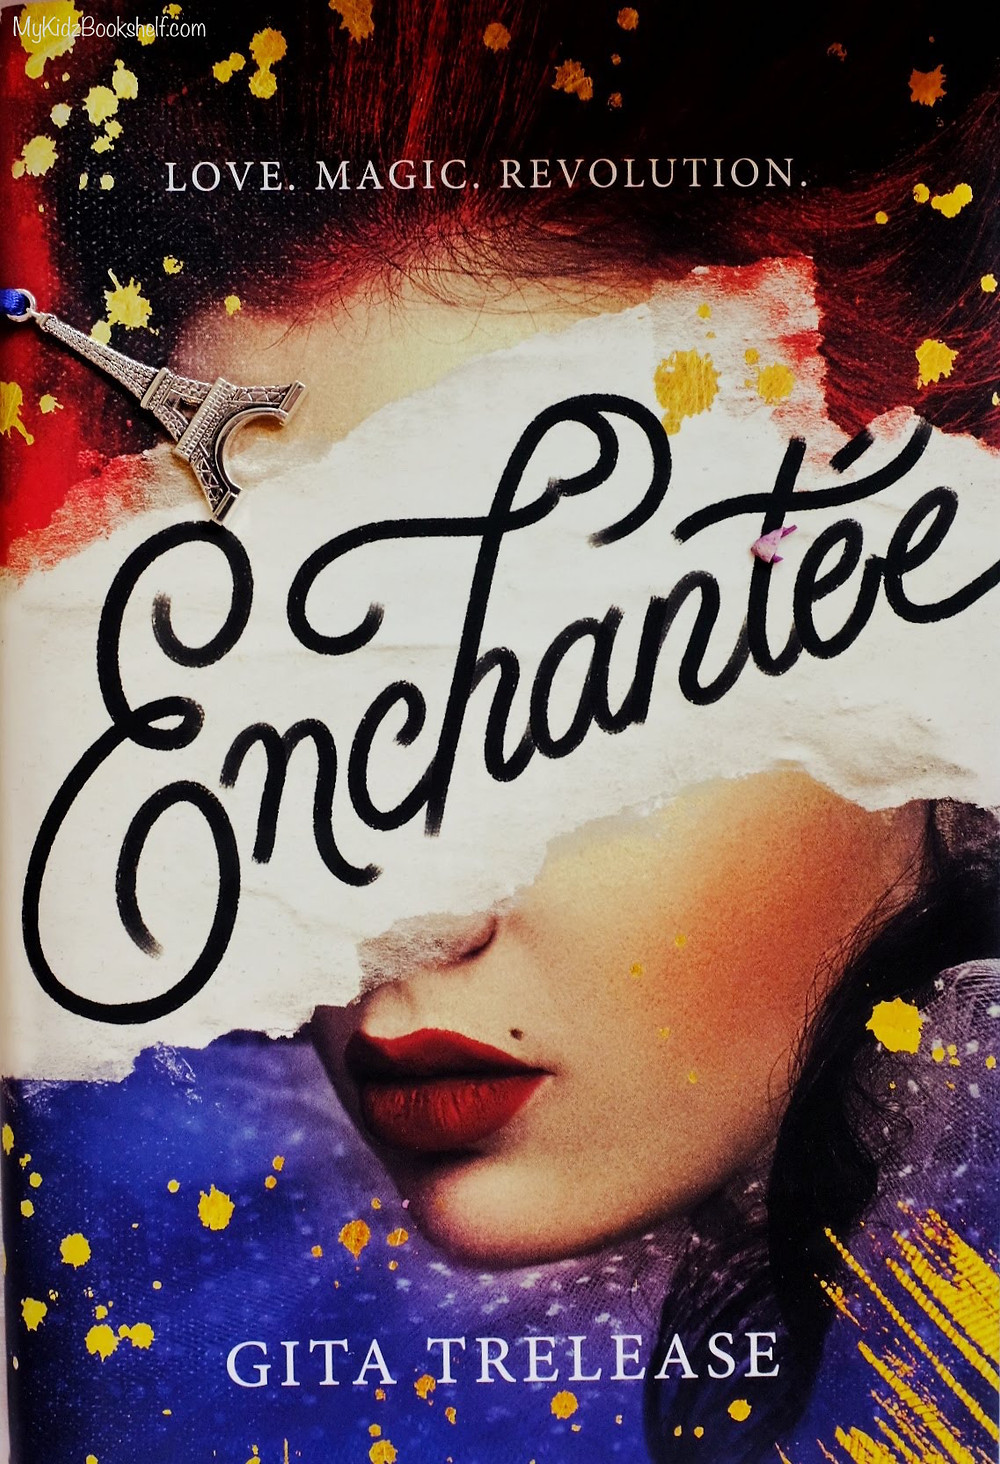 Enchantée by Gita Trelease young adult book cover Love Magic Revolution a great read for Bastille Day!